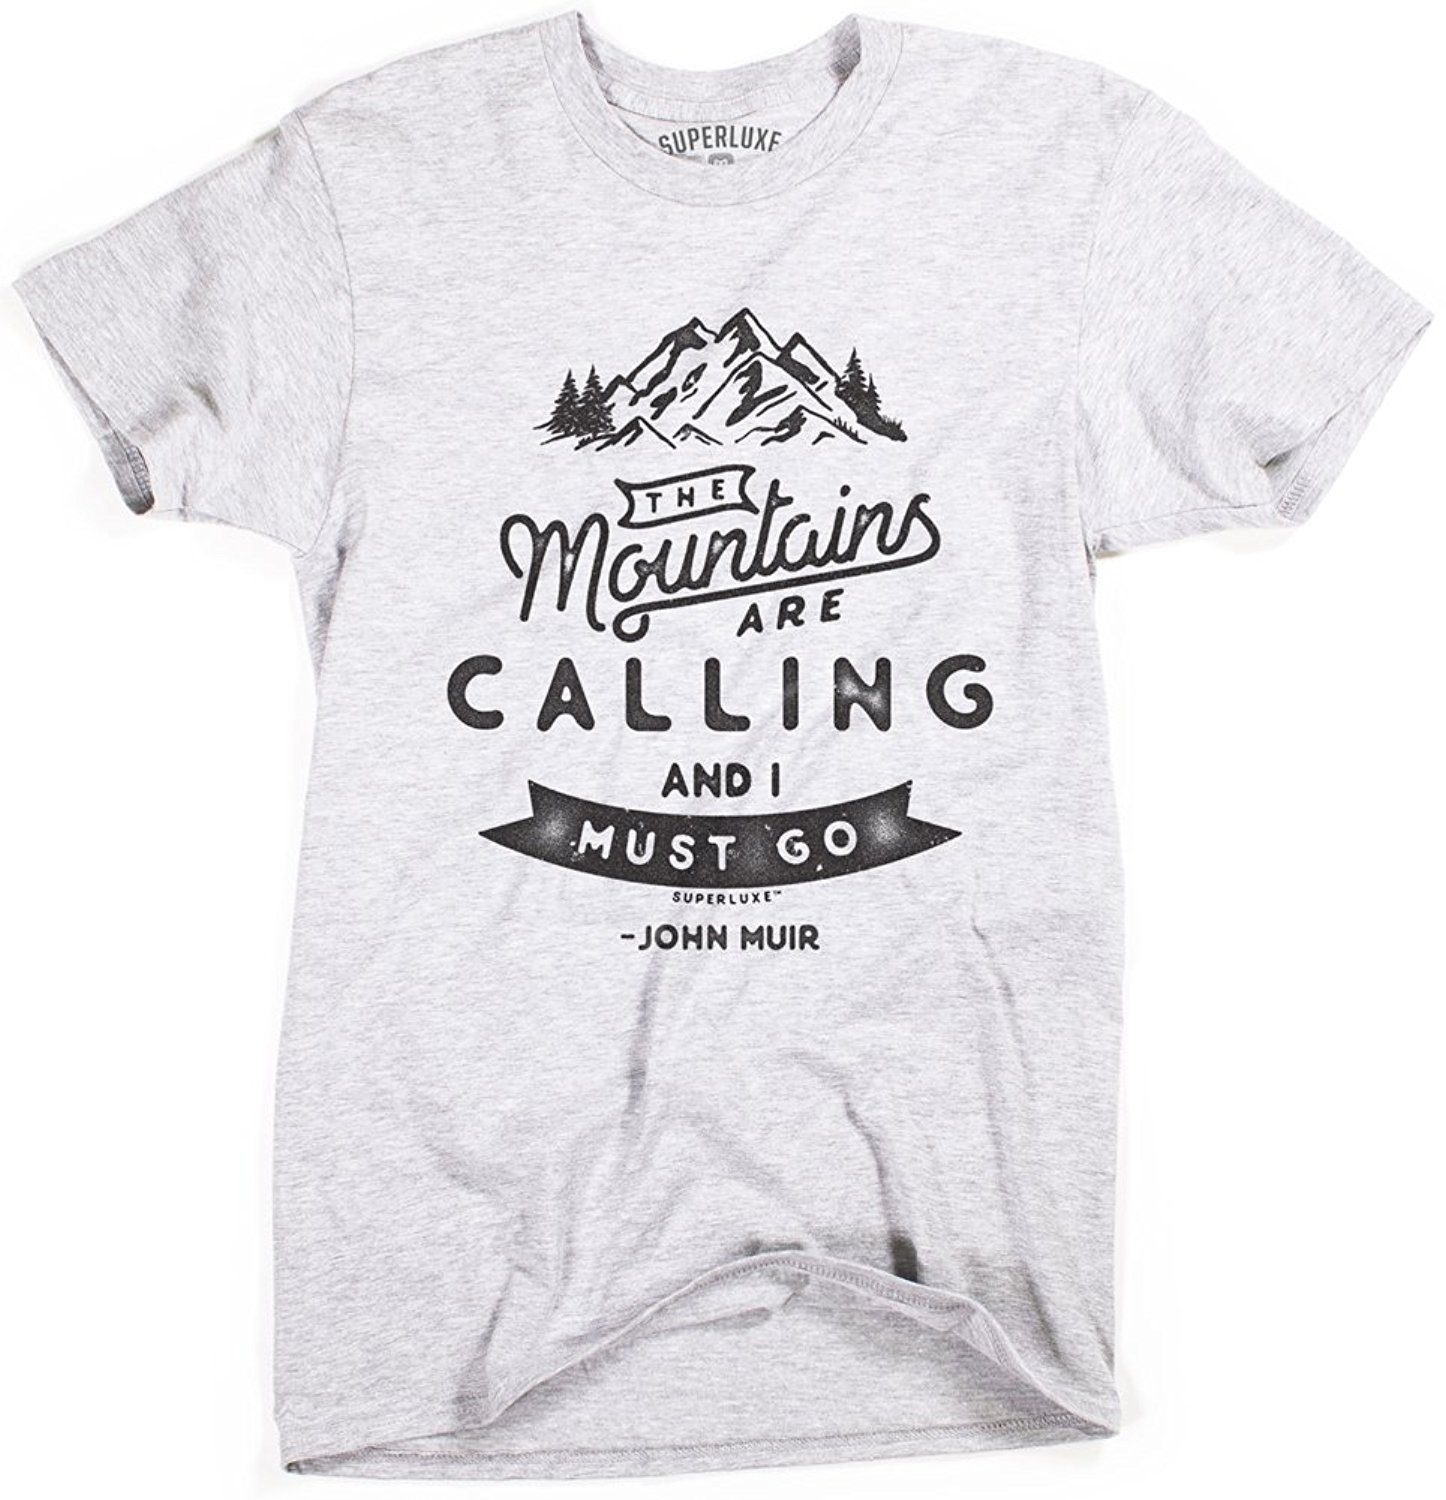 Superluxe&Trade; Mens The Mountains Are Calling and I Must Go John Muir T-Shirt T Shirts Casual Brand Clothing Cotton